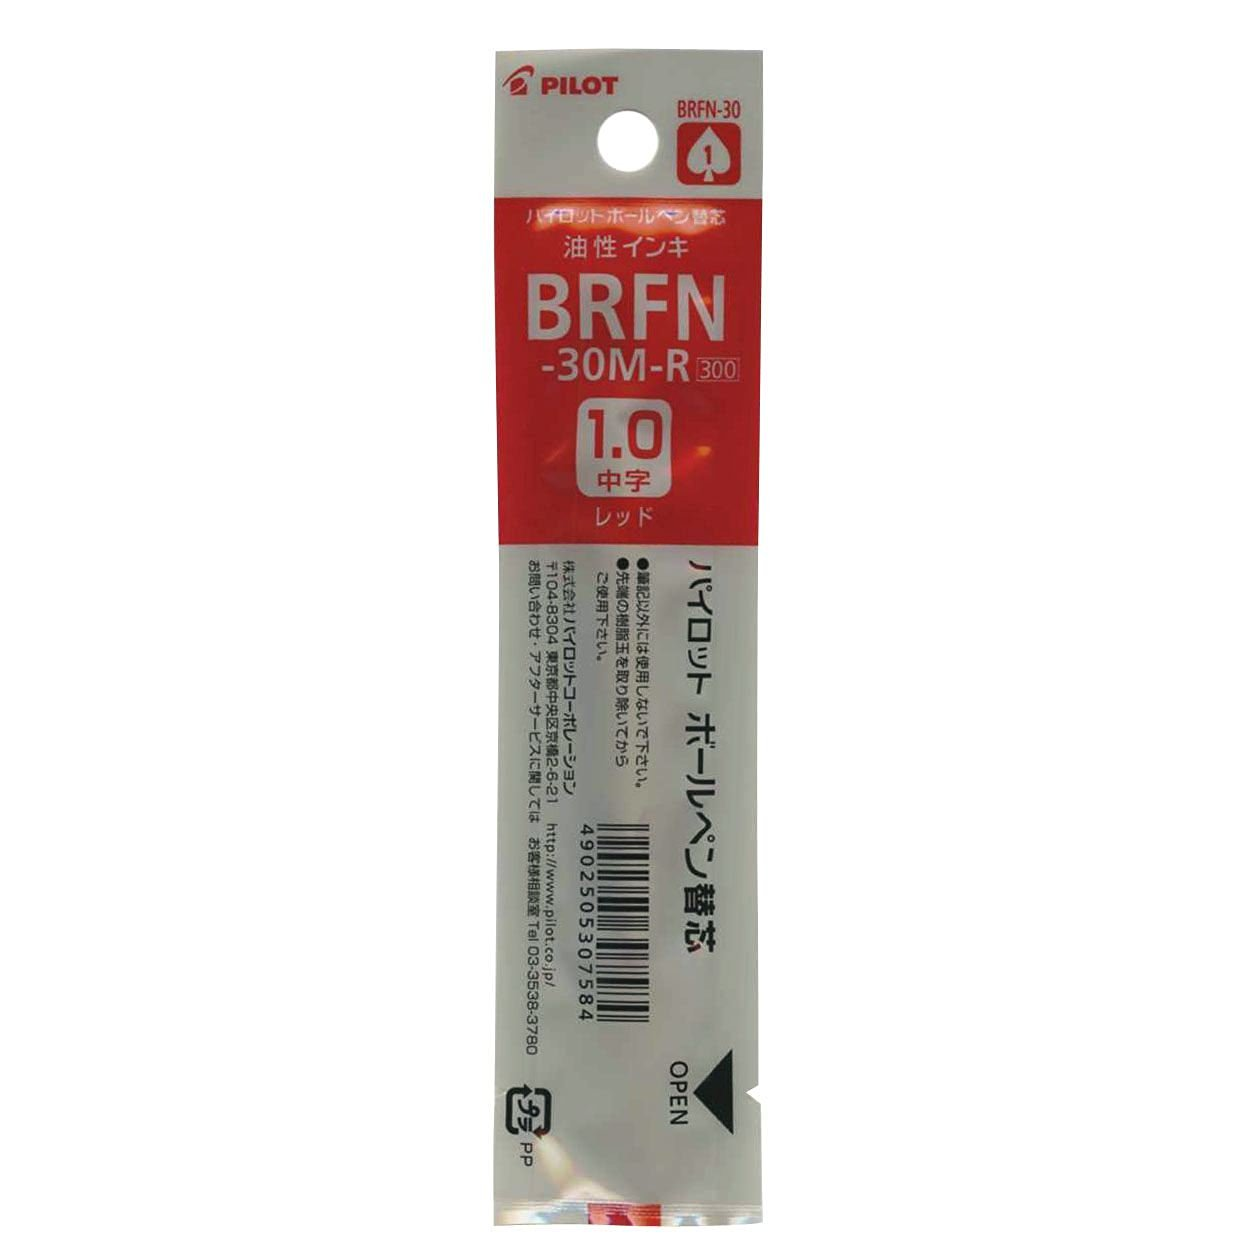 Pilot BRFN-30M-R Acro Ballpoint Pen Refill for Cavalier, Acro Drive, Medium Point, Red